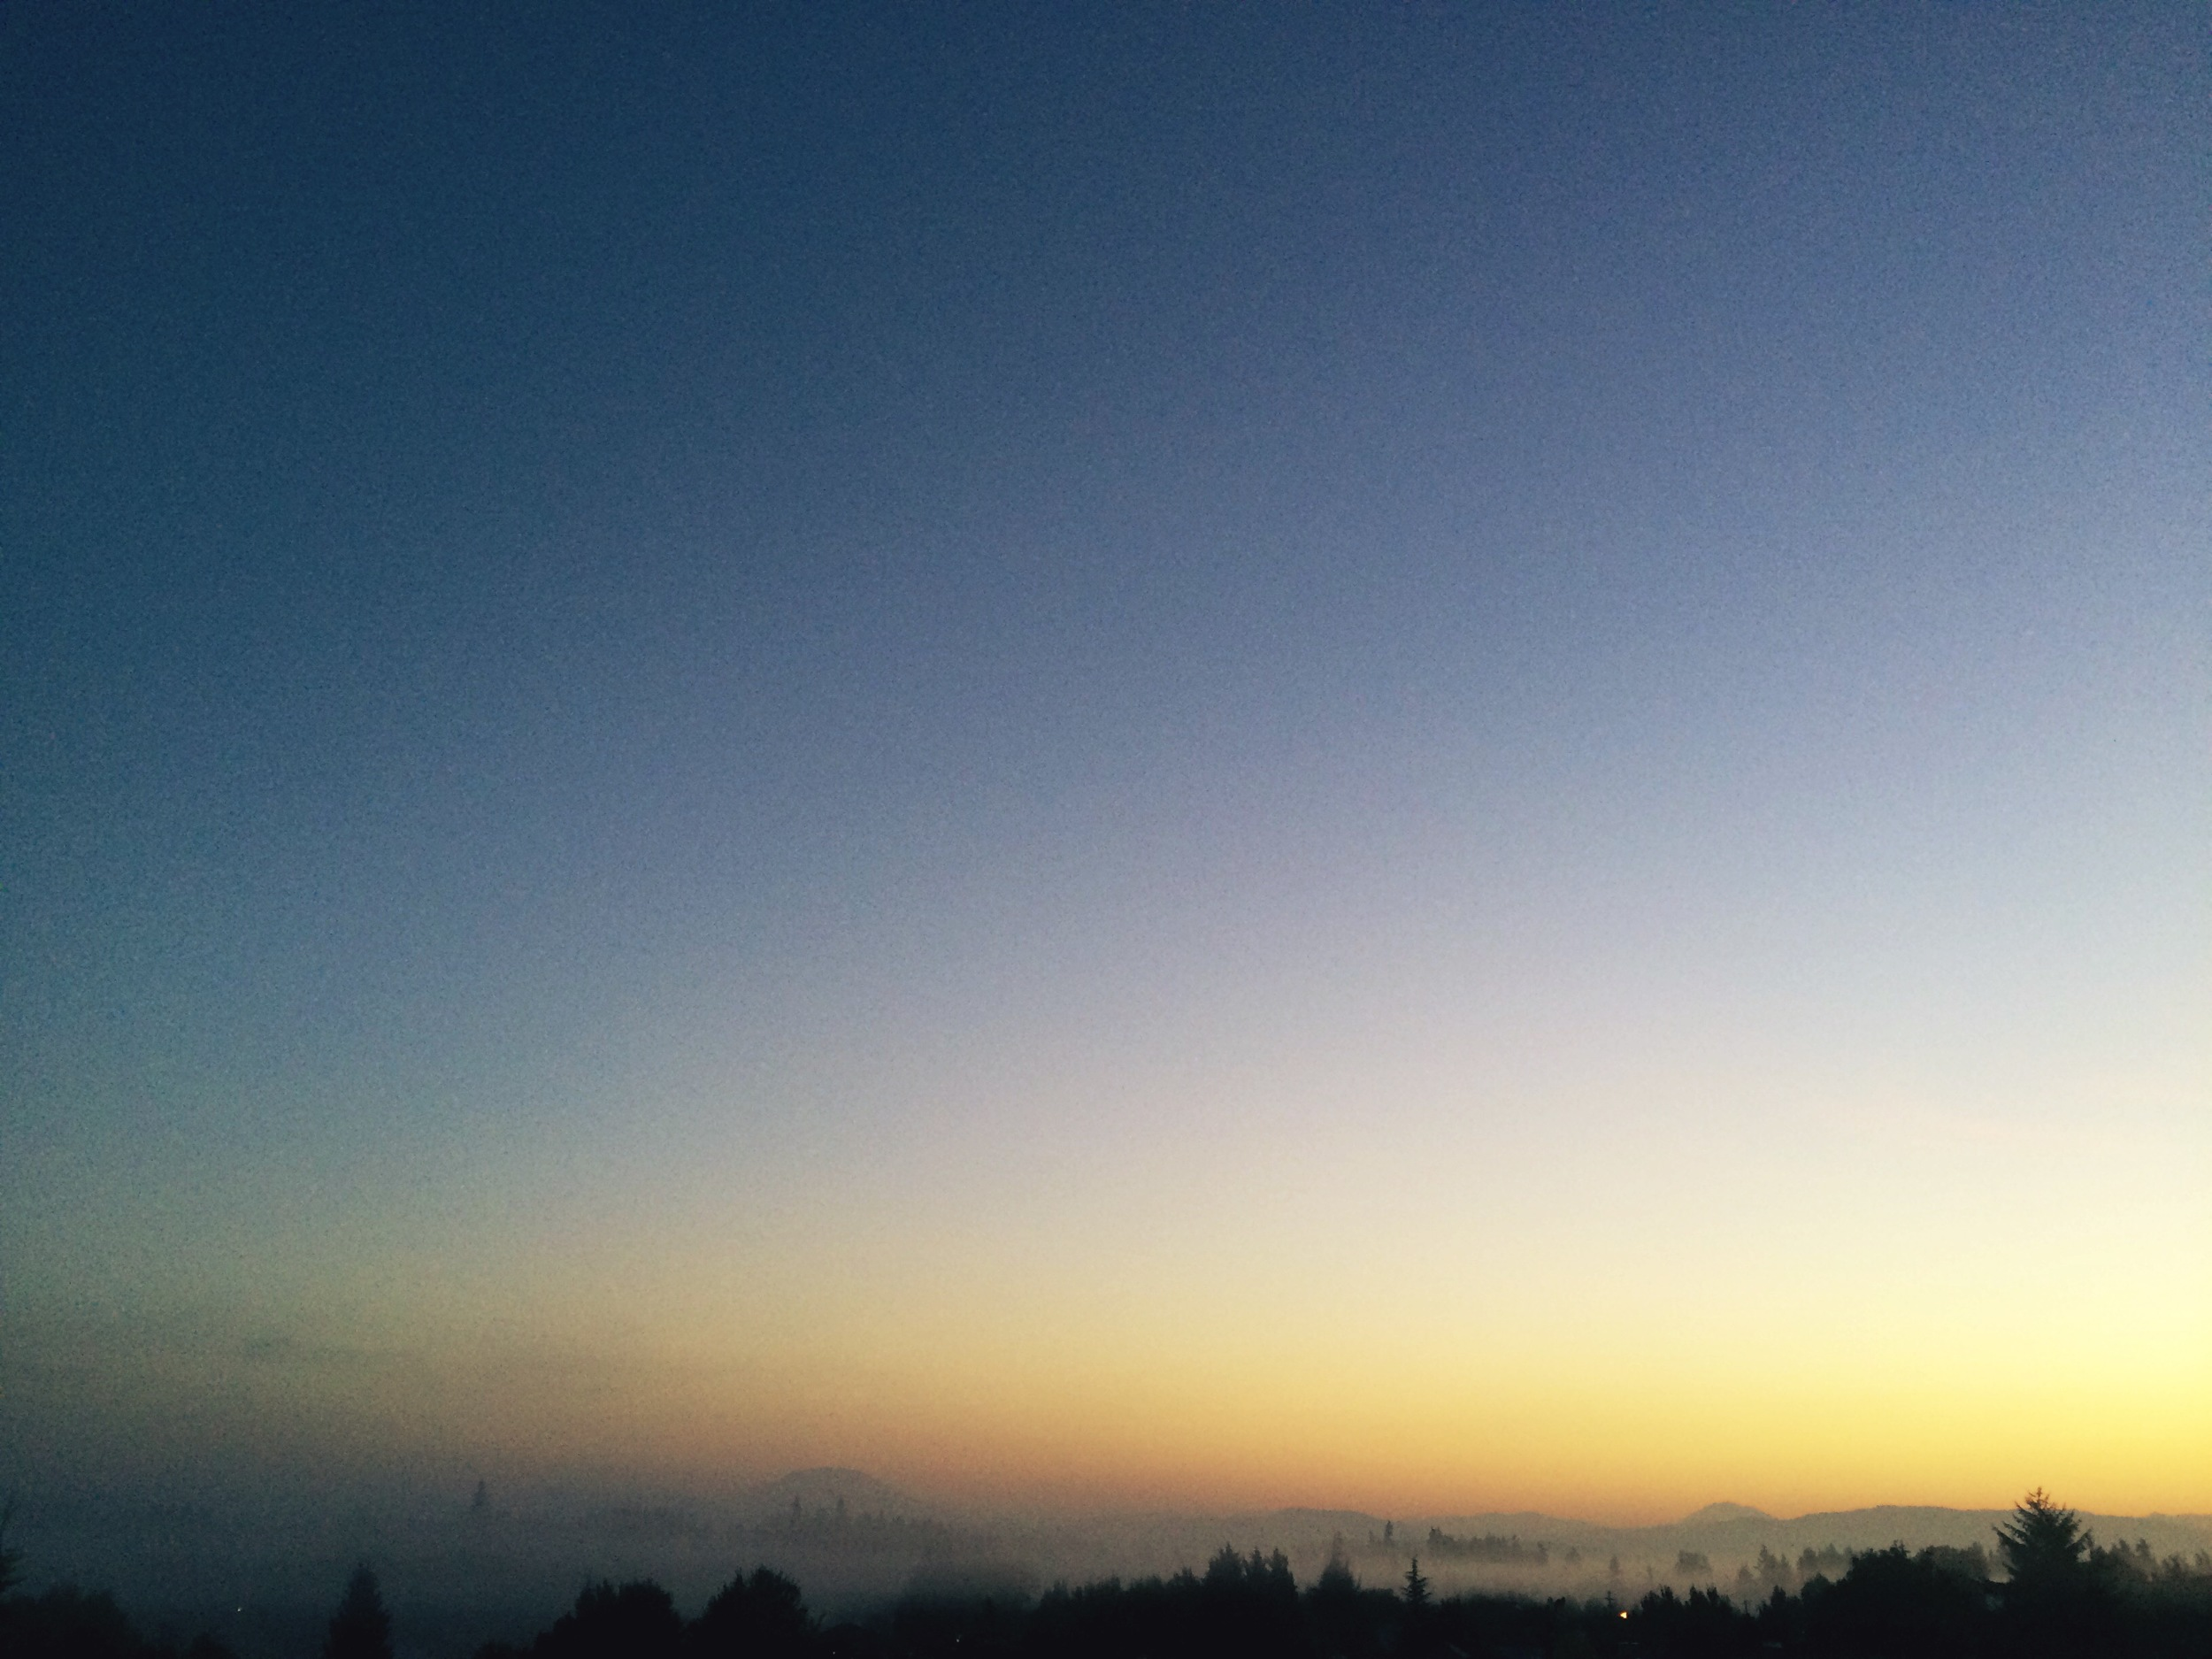 One of my favorite views in Vancouver, WA (Early morning/fog for miles from my parents' balcony)